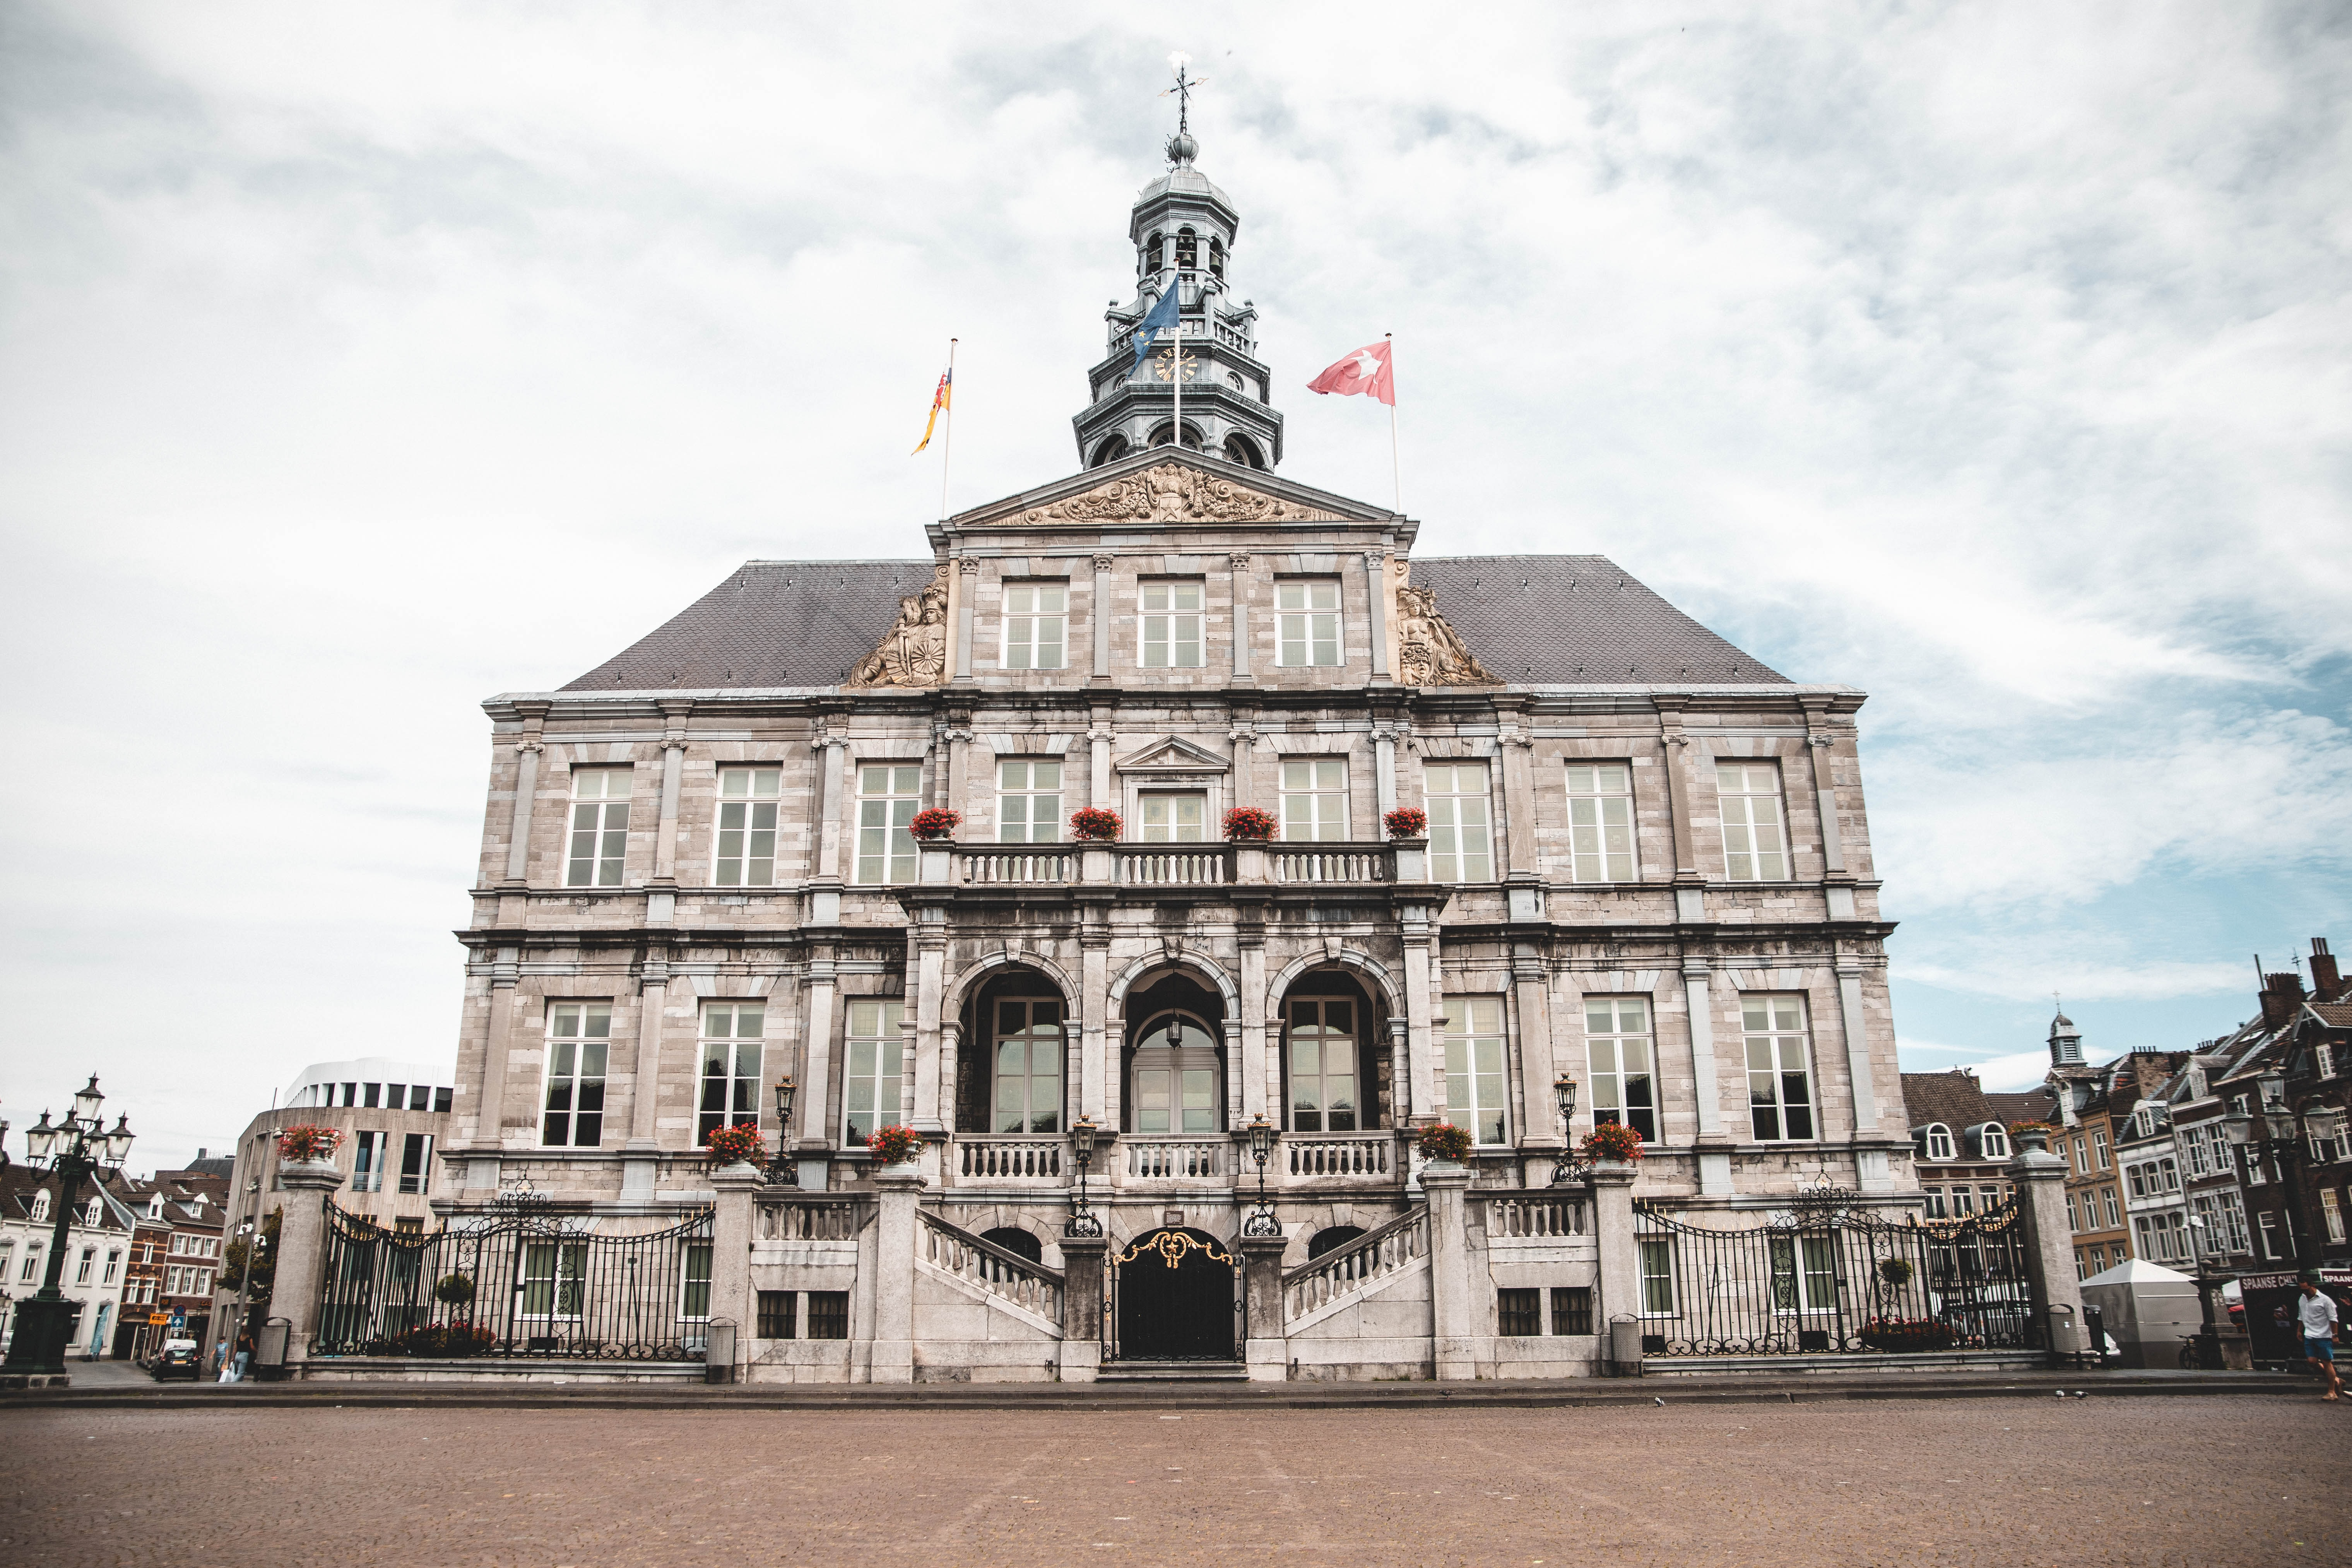 Message from the Mayor of Maastricht regarding noise nuisance